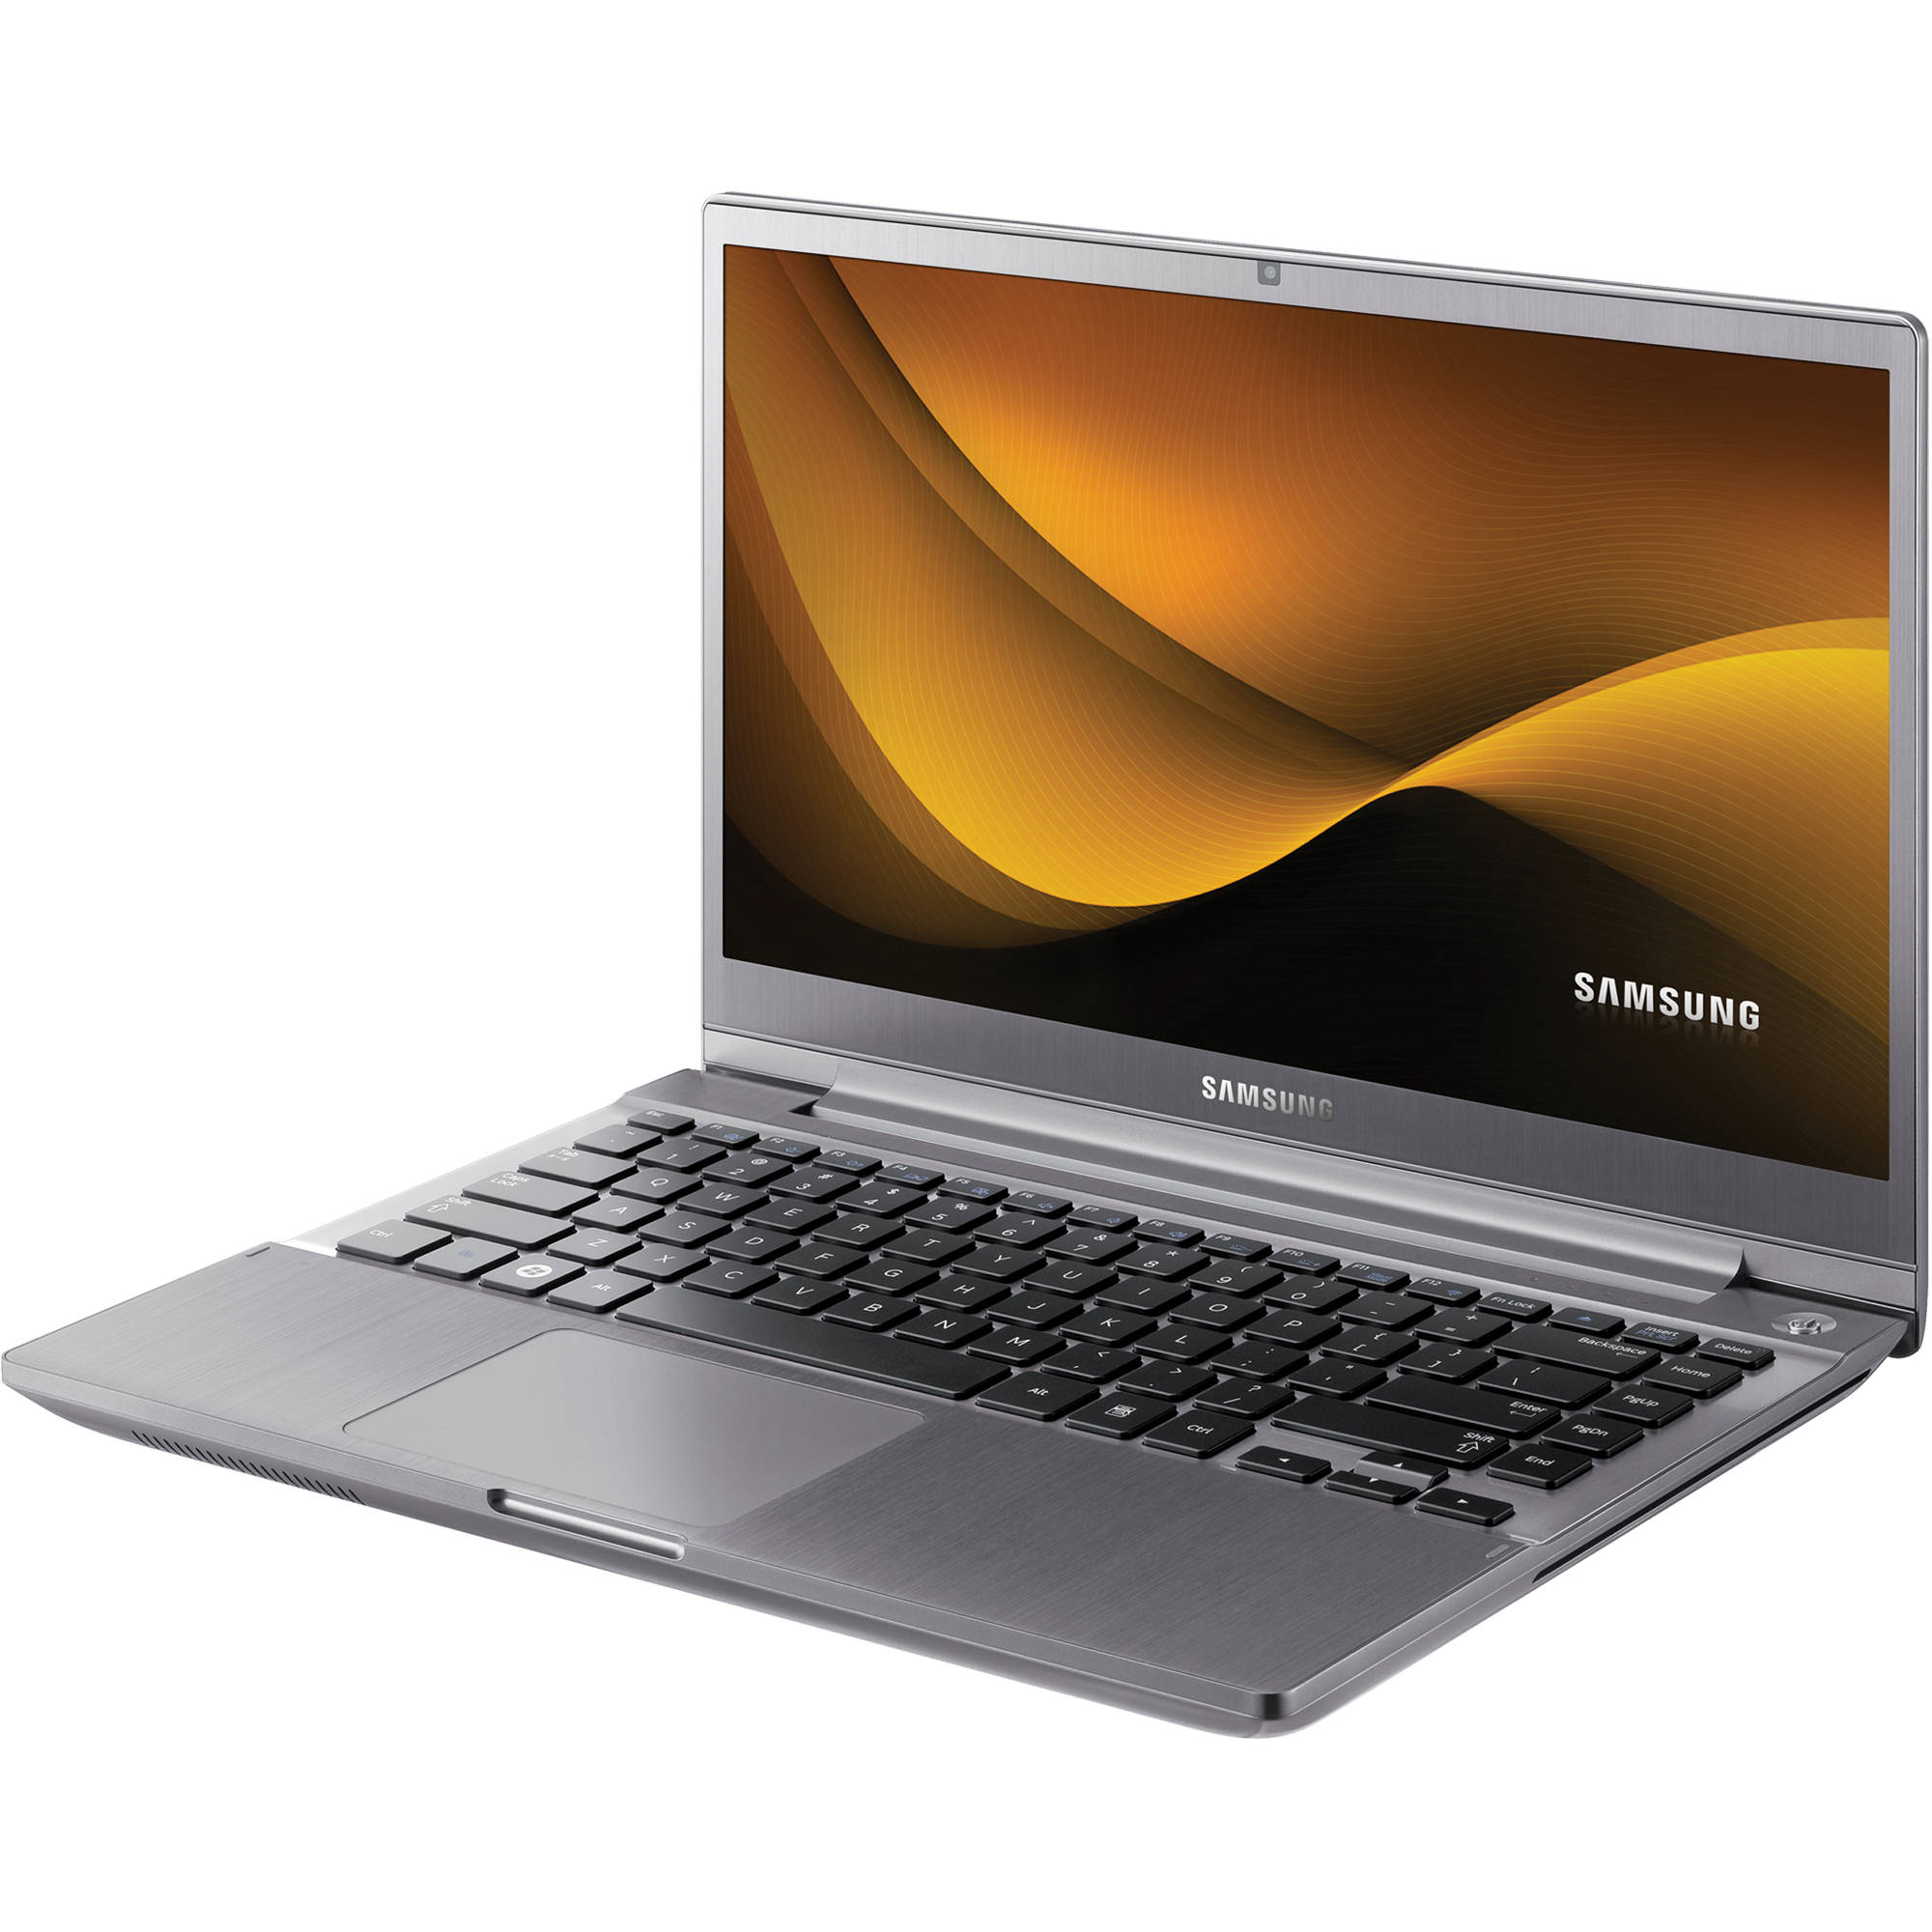 Samsung NP700Z5AH Series 7 Notebook Intel Rapid Storage 64 BIT